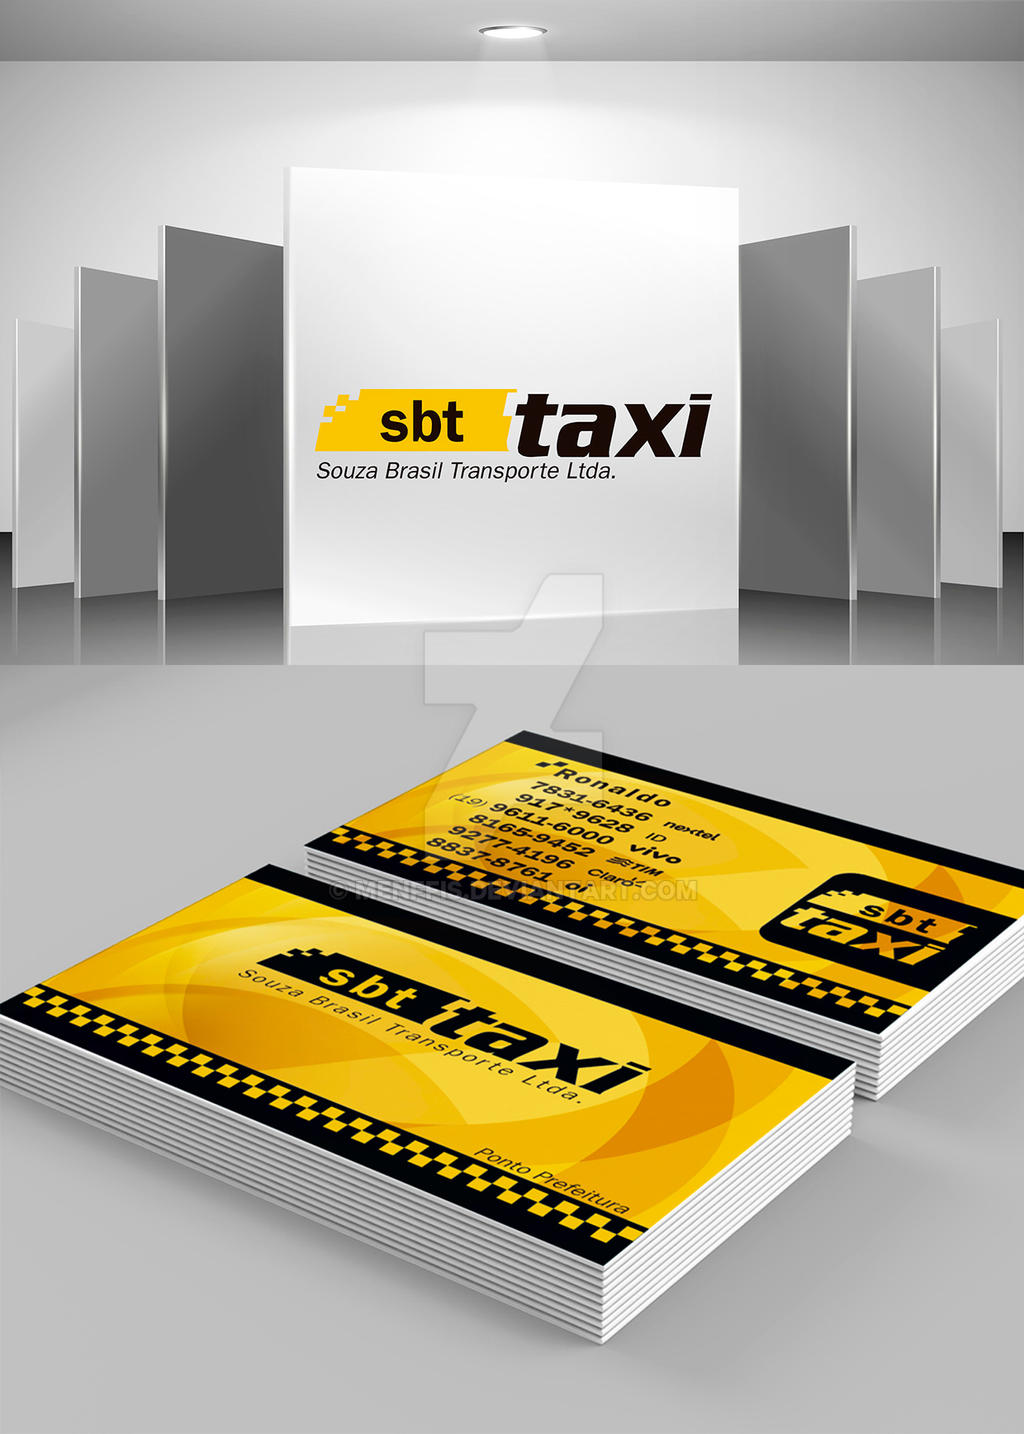 #C48B0722388600 SBT Taxi Indentidade By Menffis On DeviantArt Meest recente Design Meubels Tour En Taxis 2541 pic 102414342541 Ontwerp